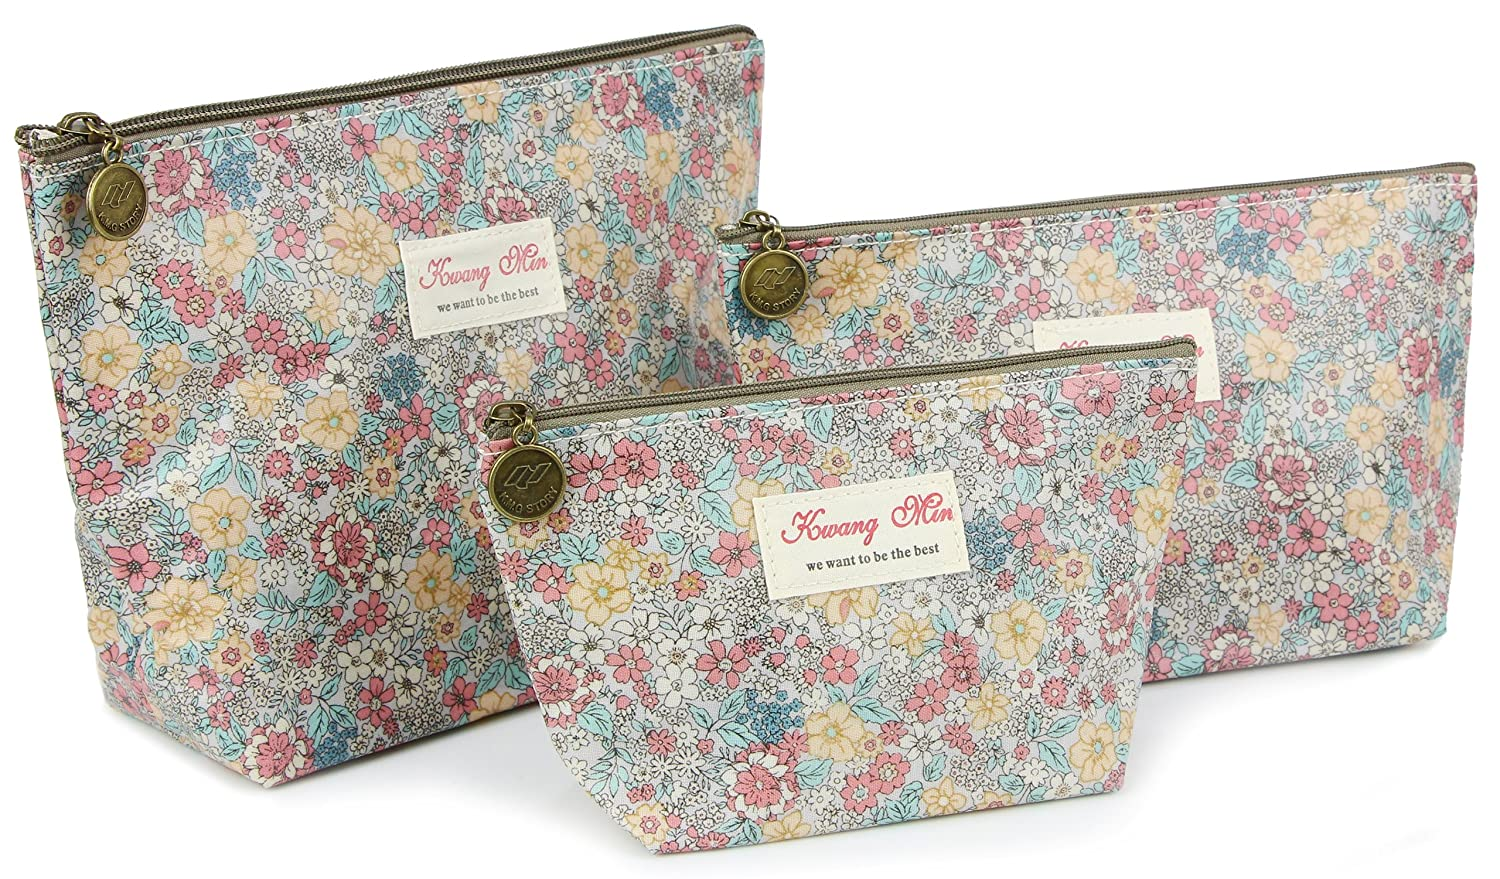 Micom Retro Floral Waterproof Travel Toiletry Cosmetic Bags Set for Women,girls